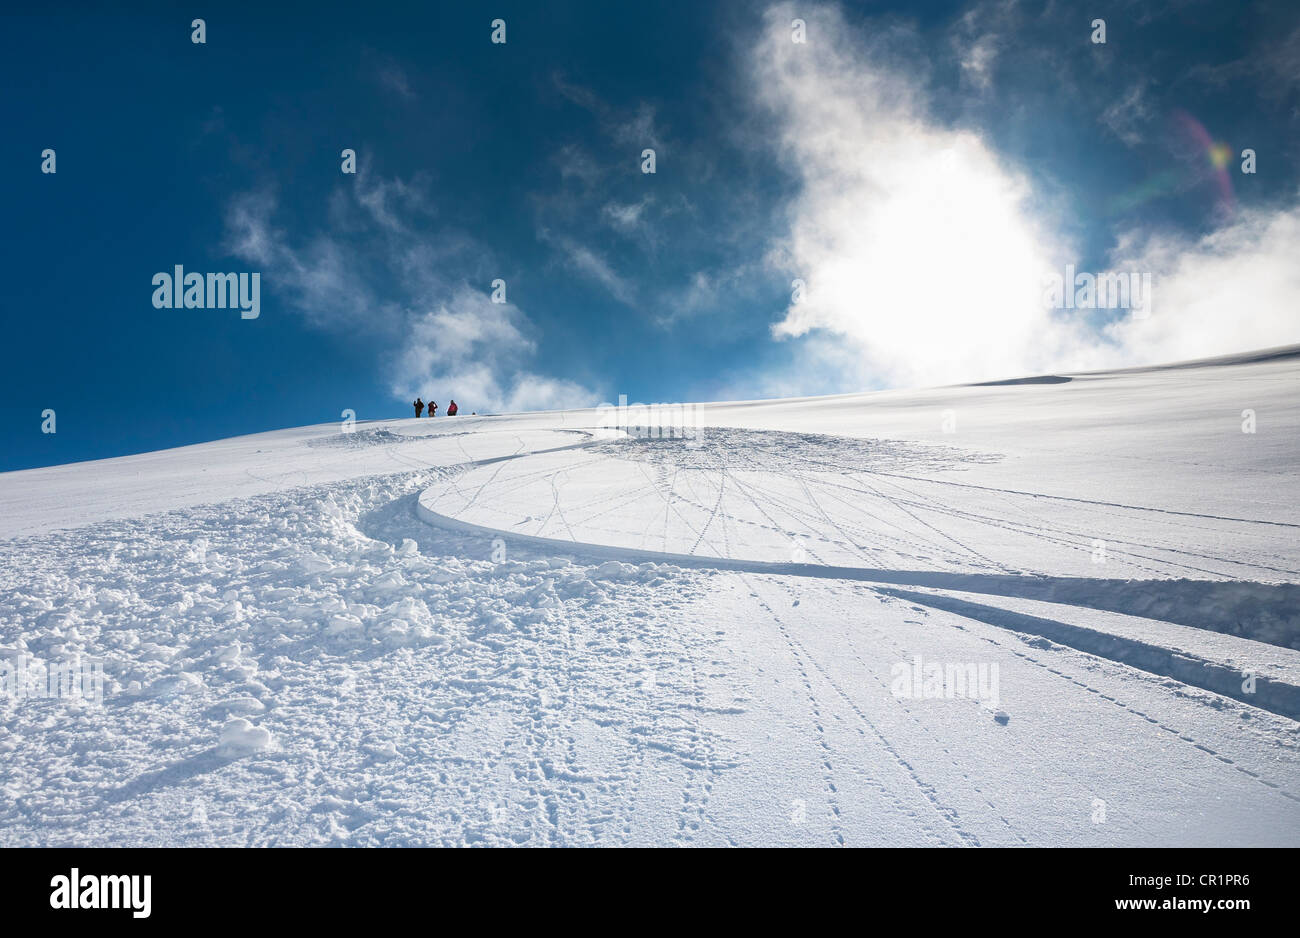 Ski and snowboard tracks on snowy hill - Stock Image